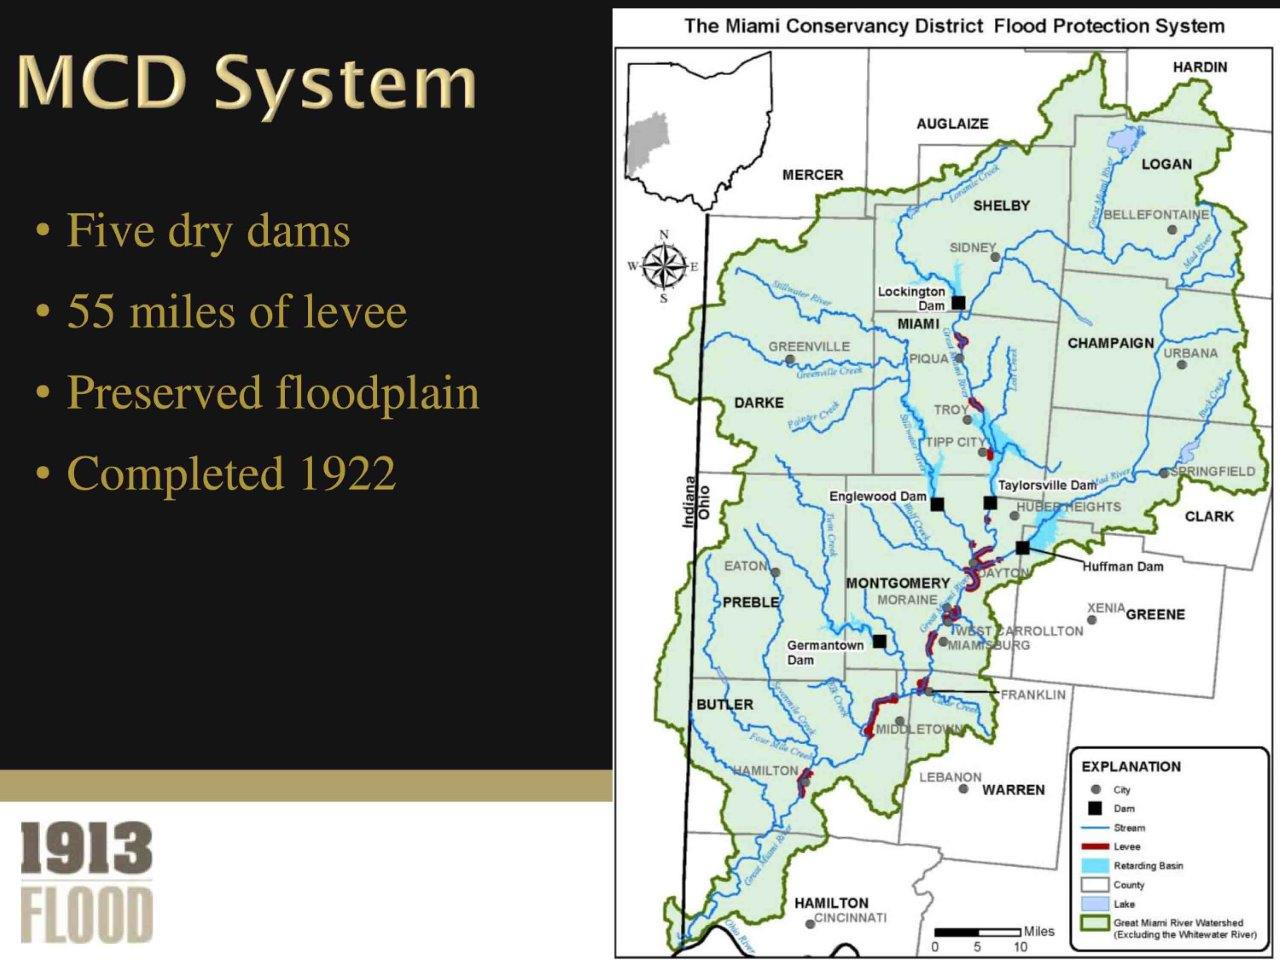 Moraine Ohio Map.Our National Calamity The Great Easter 1913 Flood Mapping Disaster